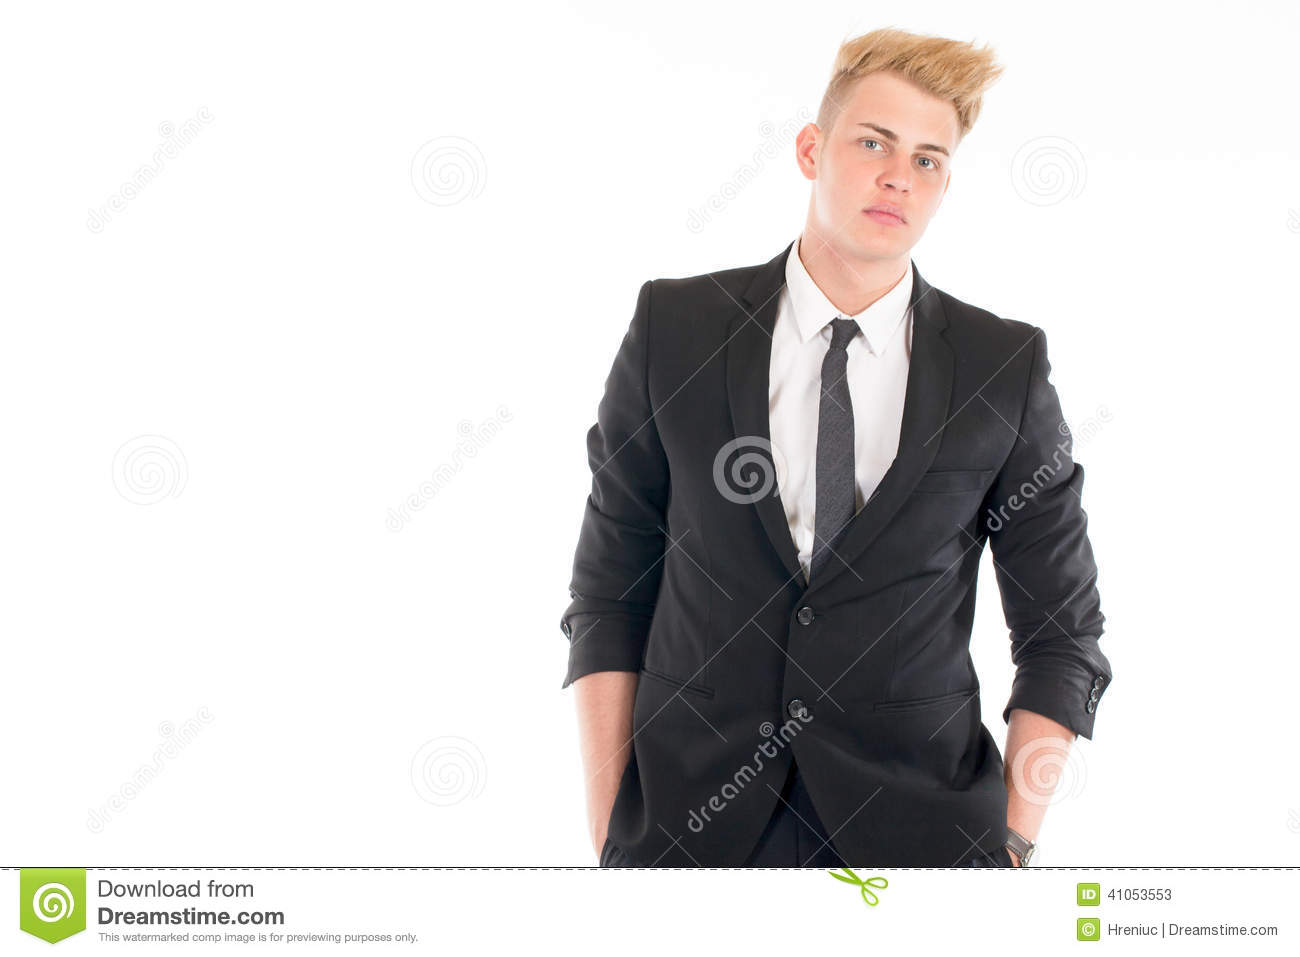 closeup portrait of a handsome young man in a business